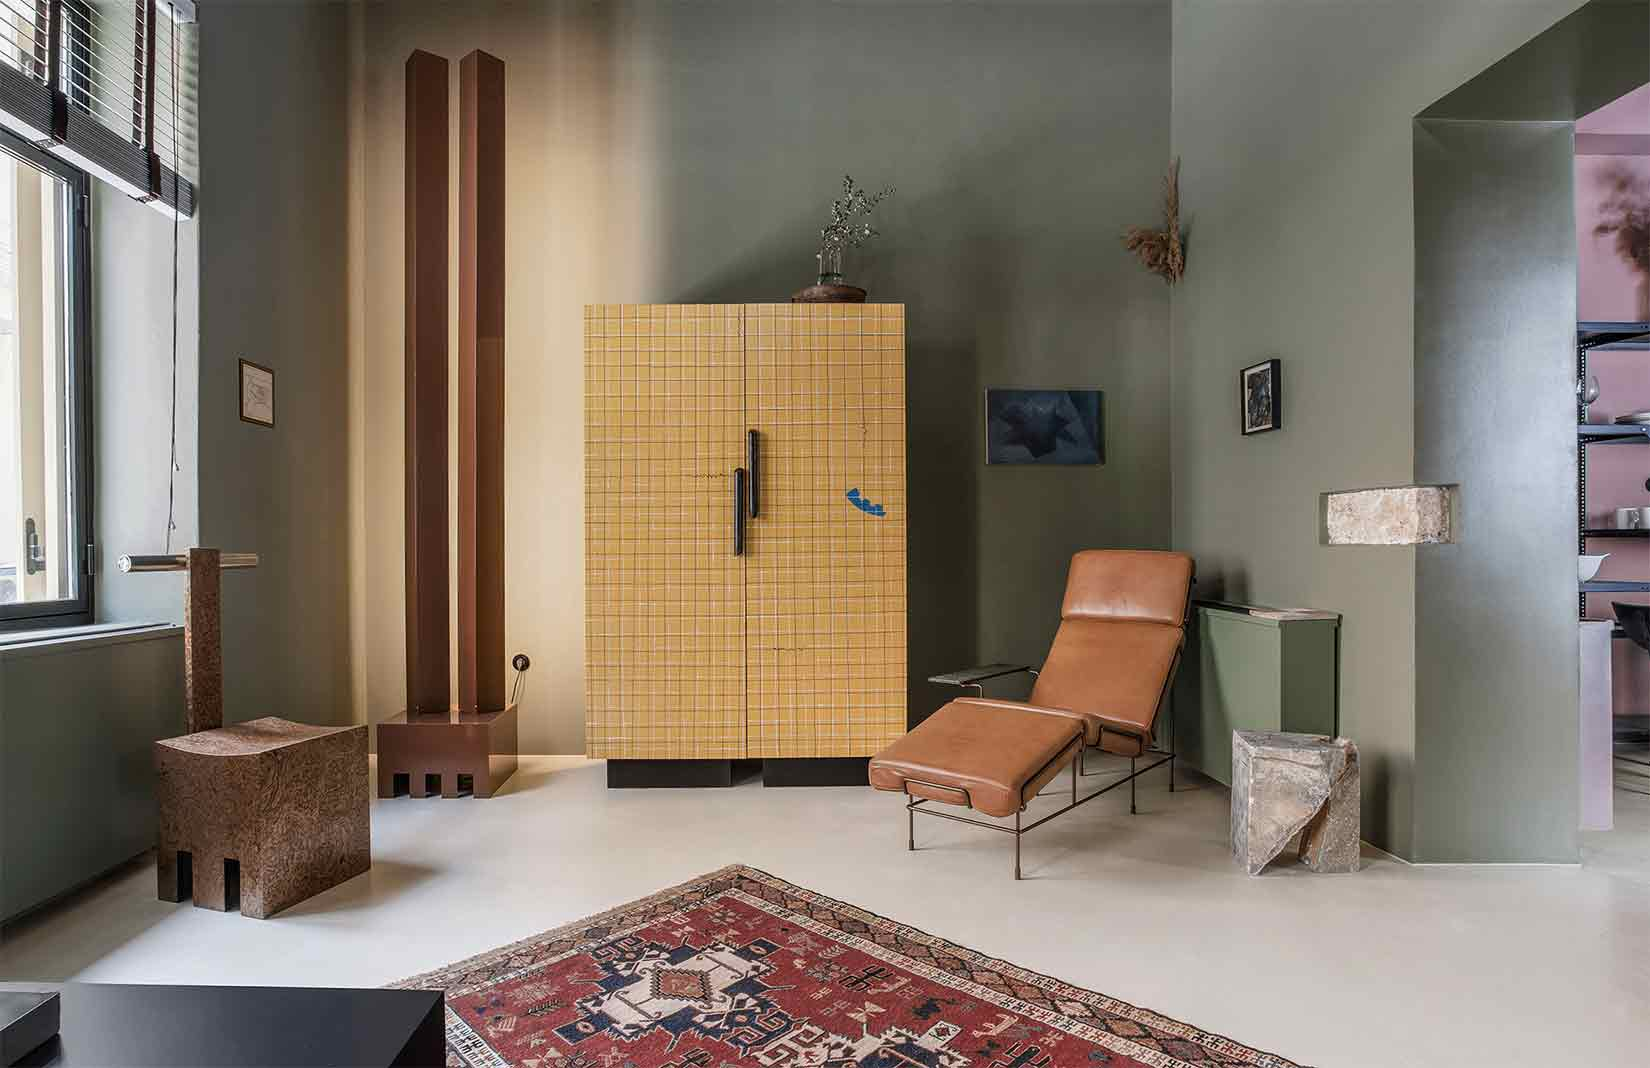 Athens guesthouse Esperinos lets guests immerse themselves in contemporary Greek design